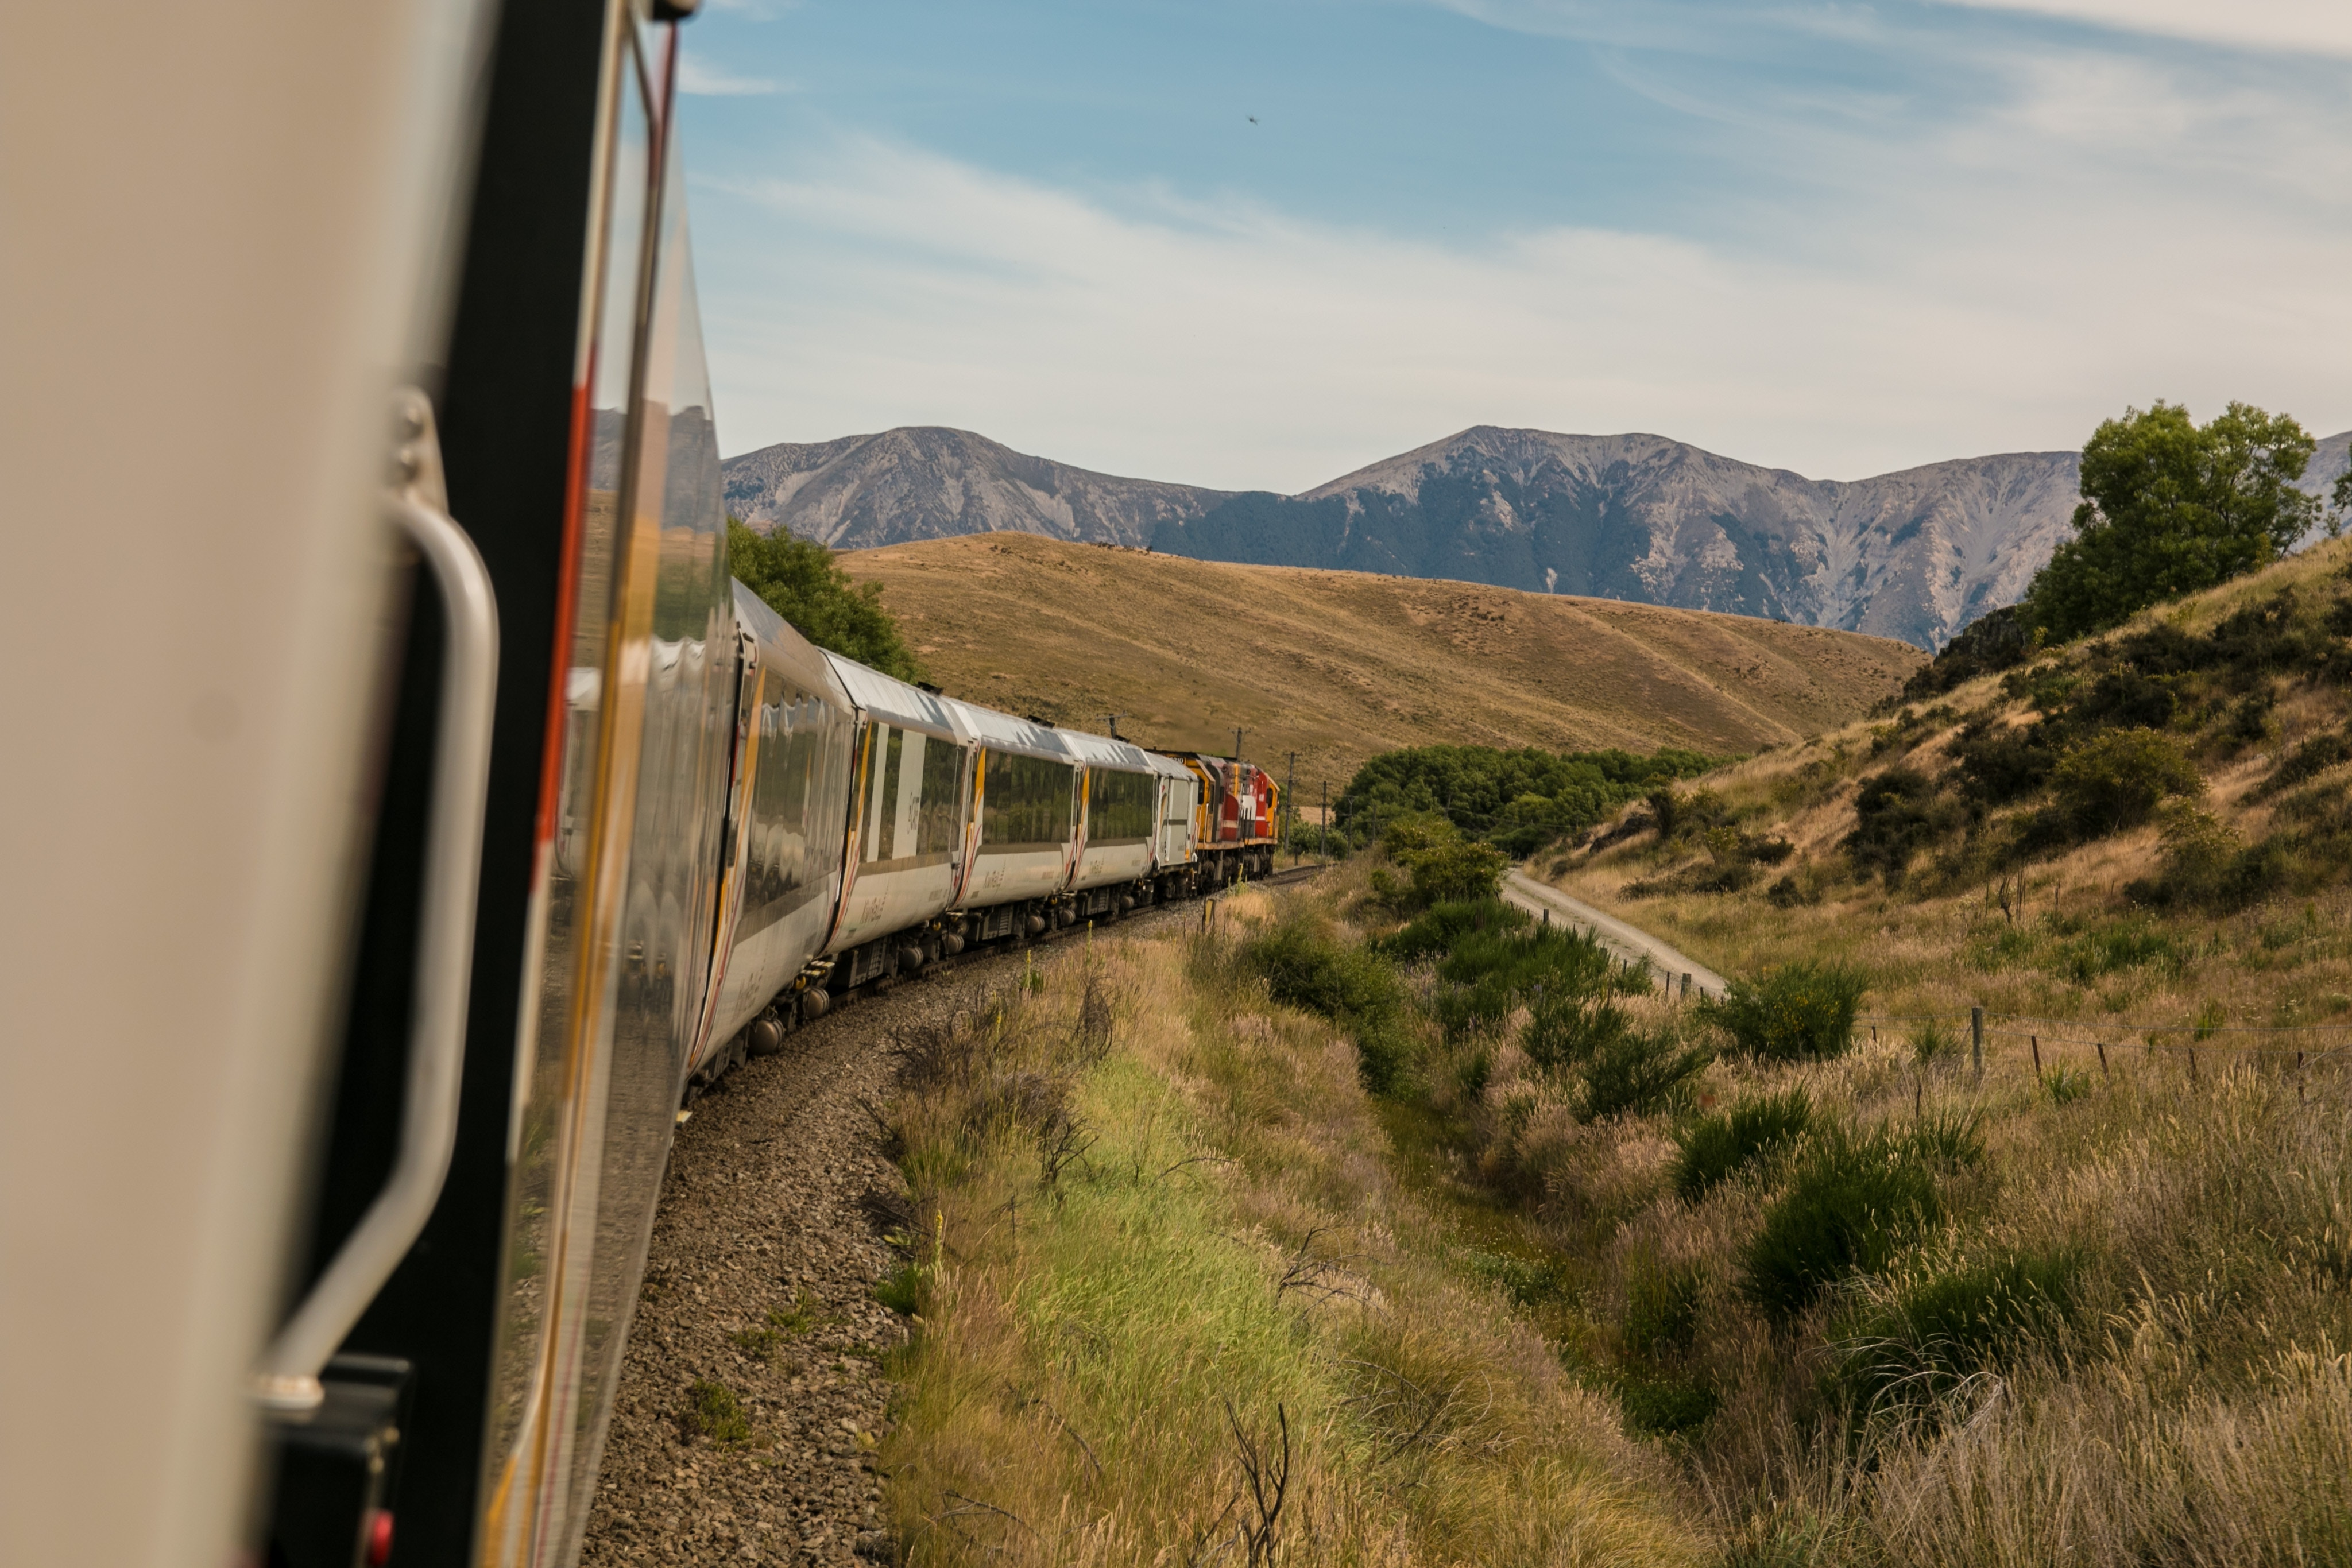 Image of a train traveling through the countryside